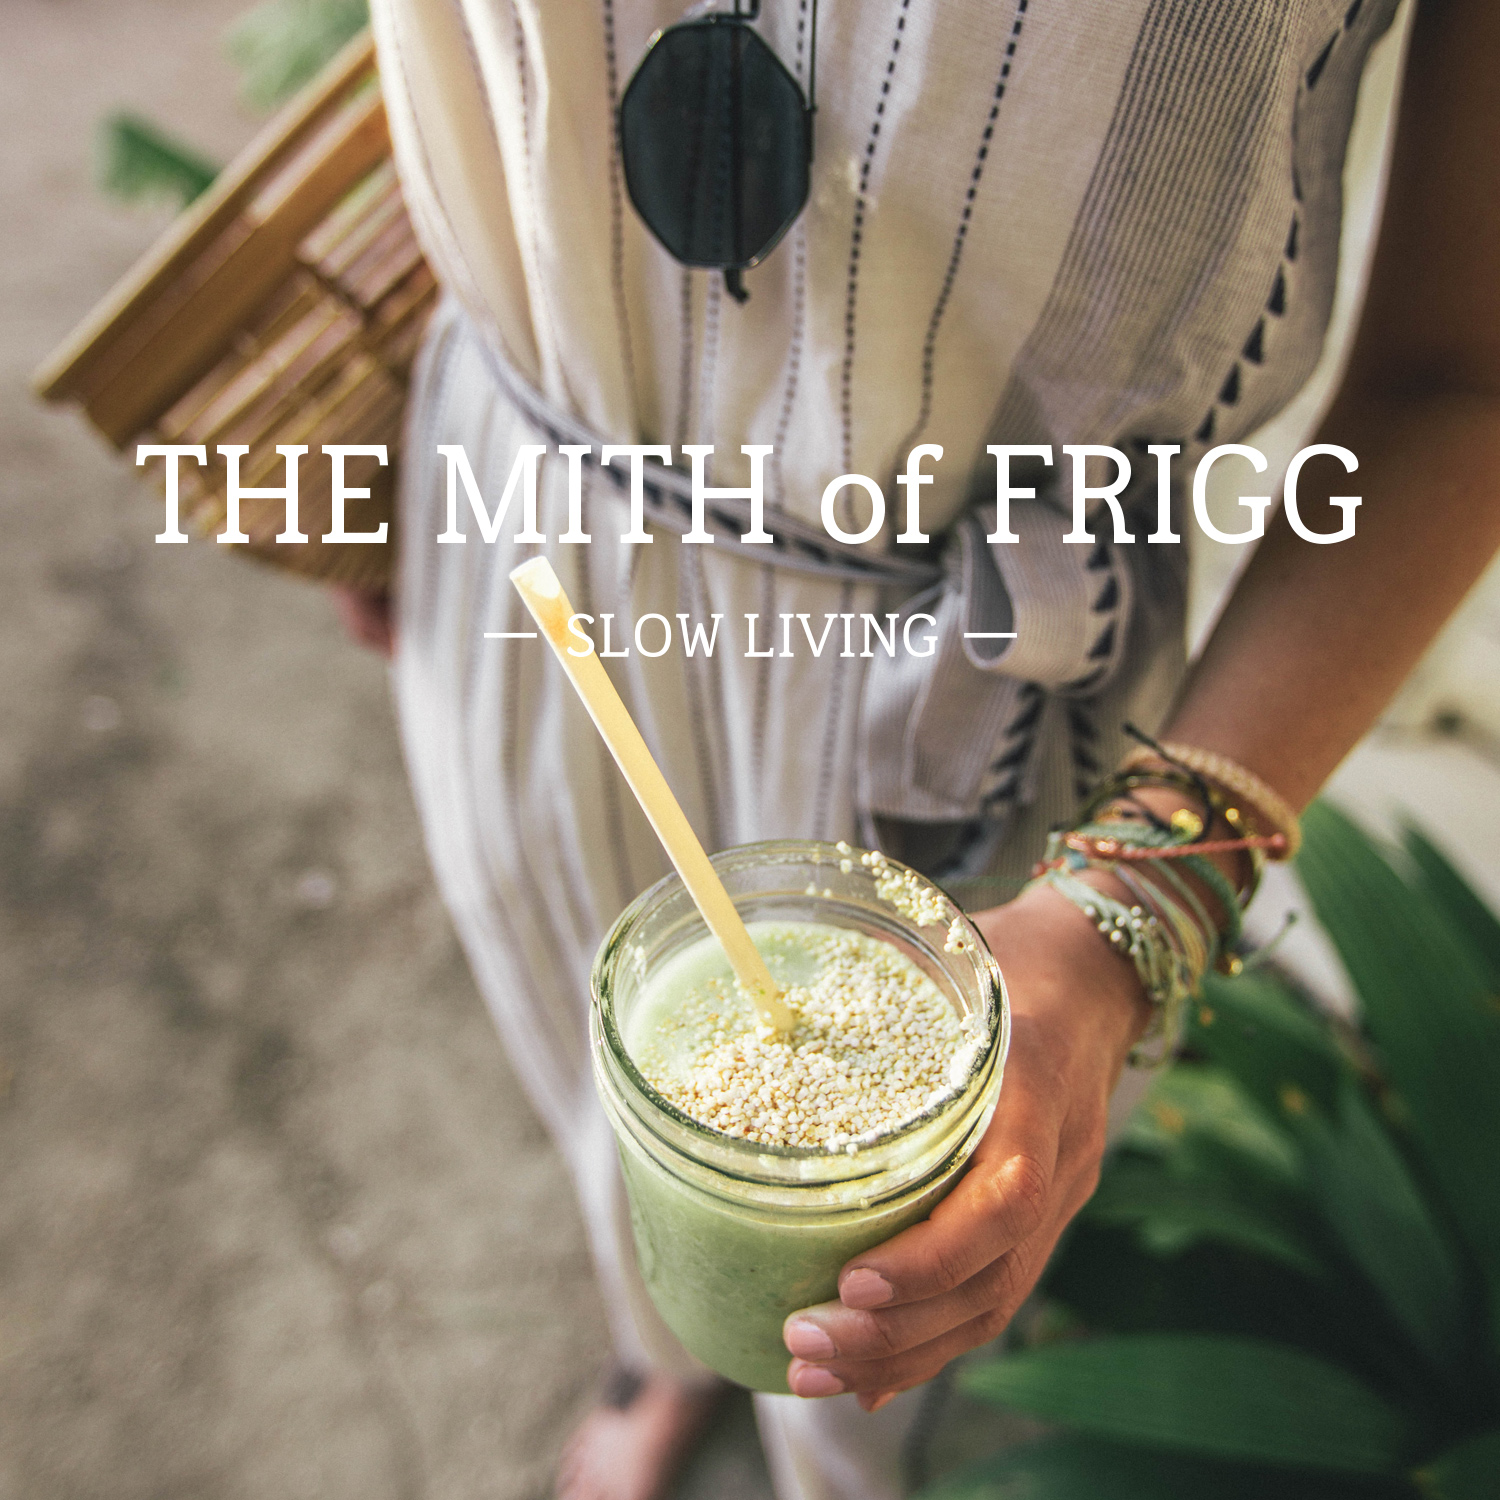 The Myth of Frigg